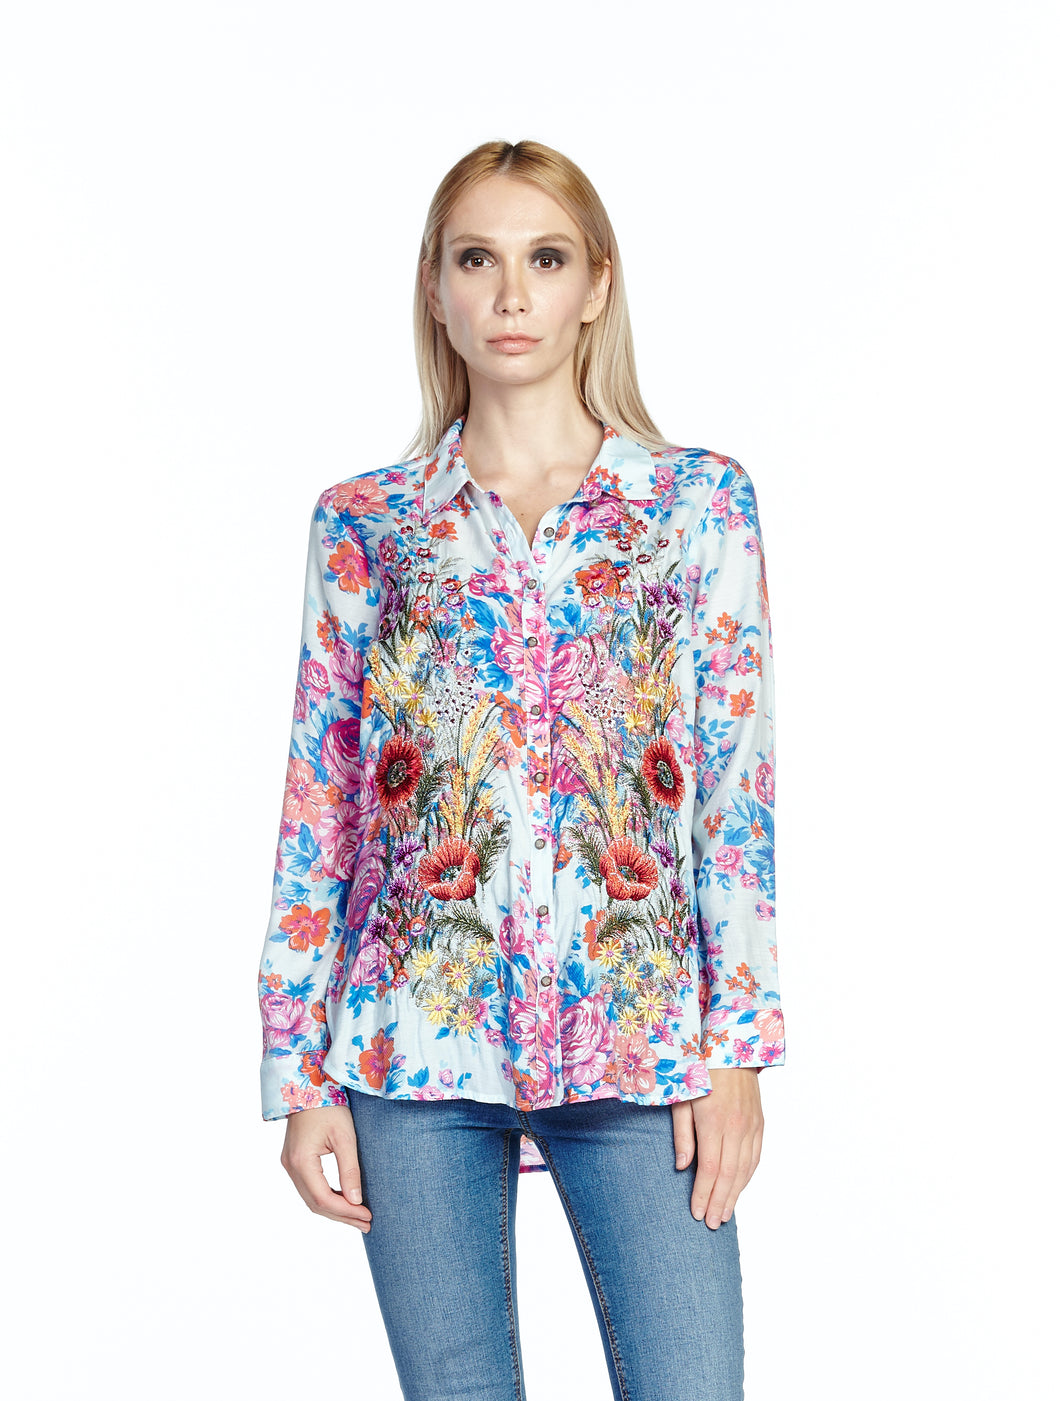 ARATTA-Fashion-Our-Hearts-Blouse-Worn-by-a-Beautiful-Woman-ED19B319A